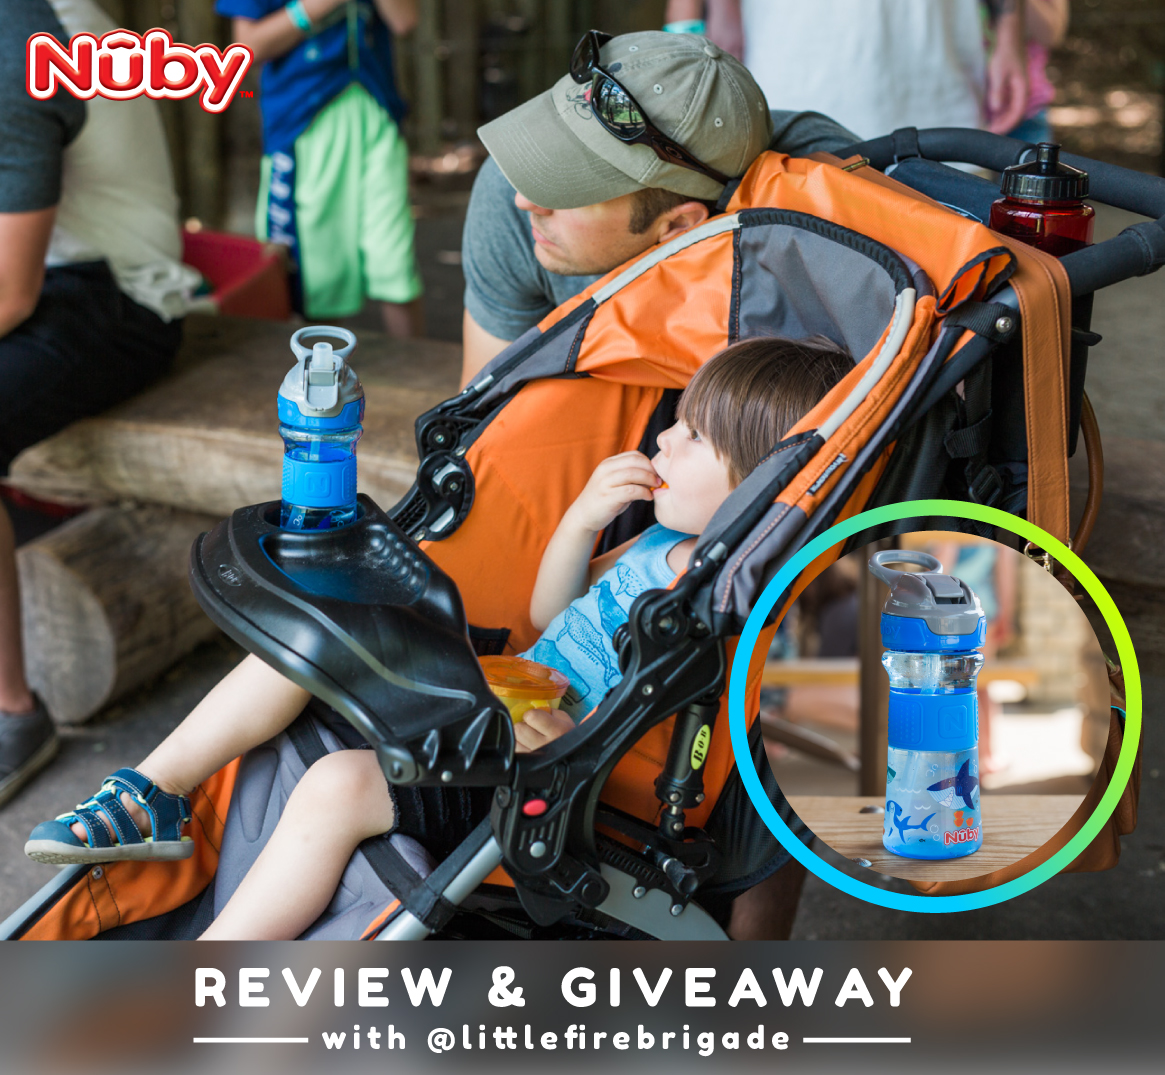 nuby-360-cup-review-28